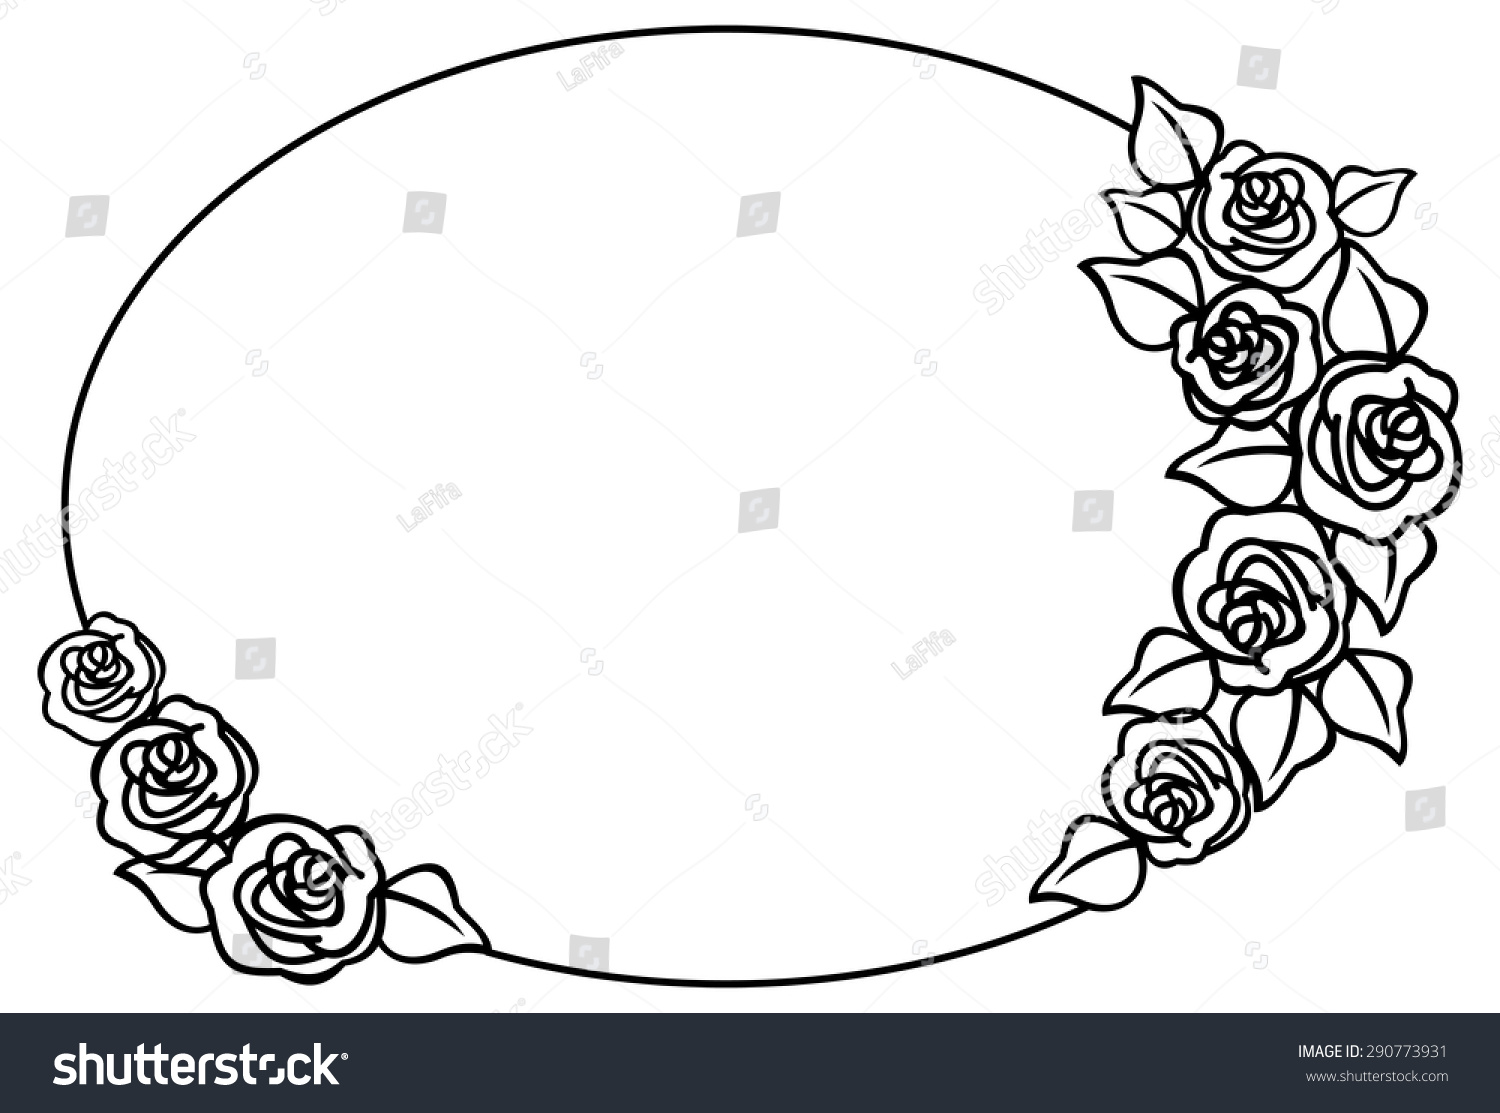 Glasses Frame Outline : Oval Frame With Outline Roses Stock Vector Illustration ...